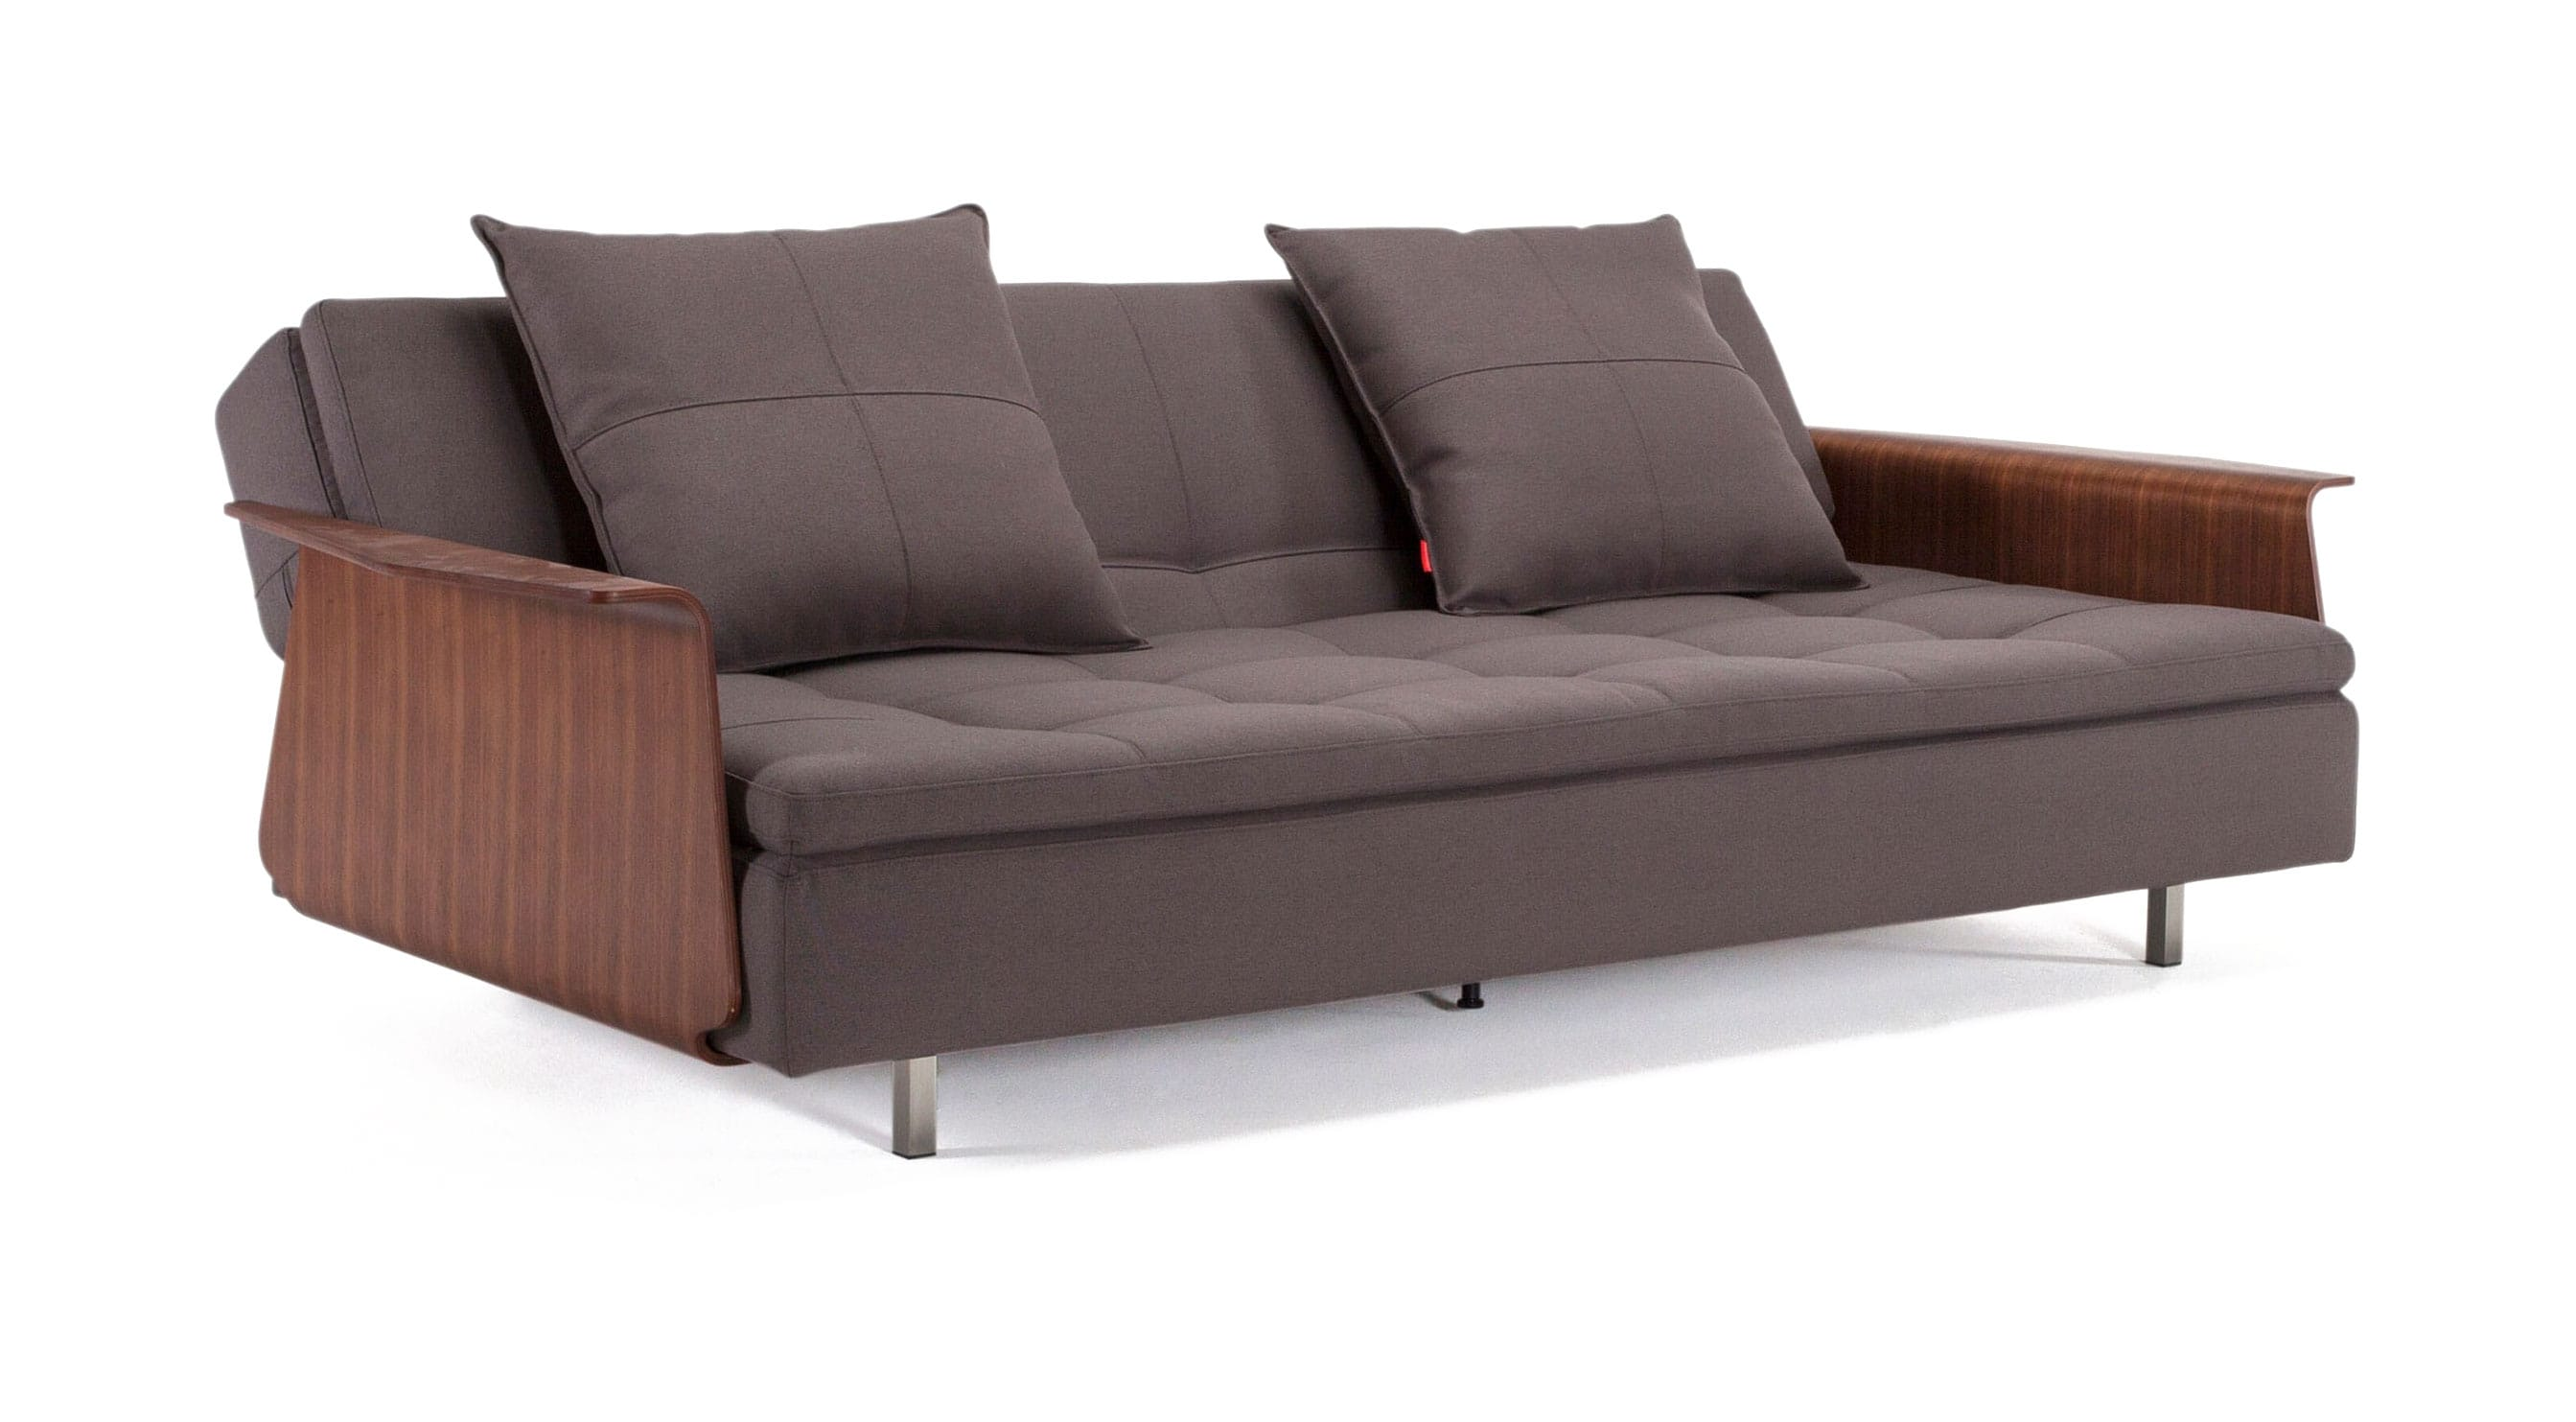 long sofa arm covers murphy bed kit decoration in chaise lounge longue